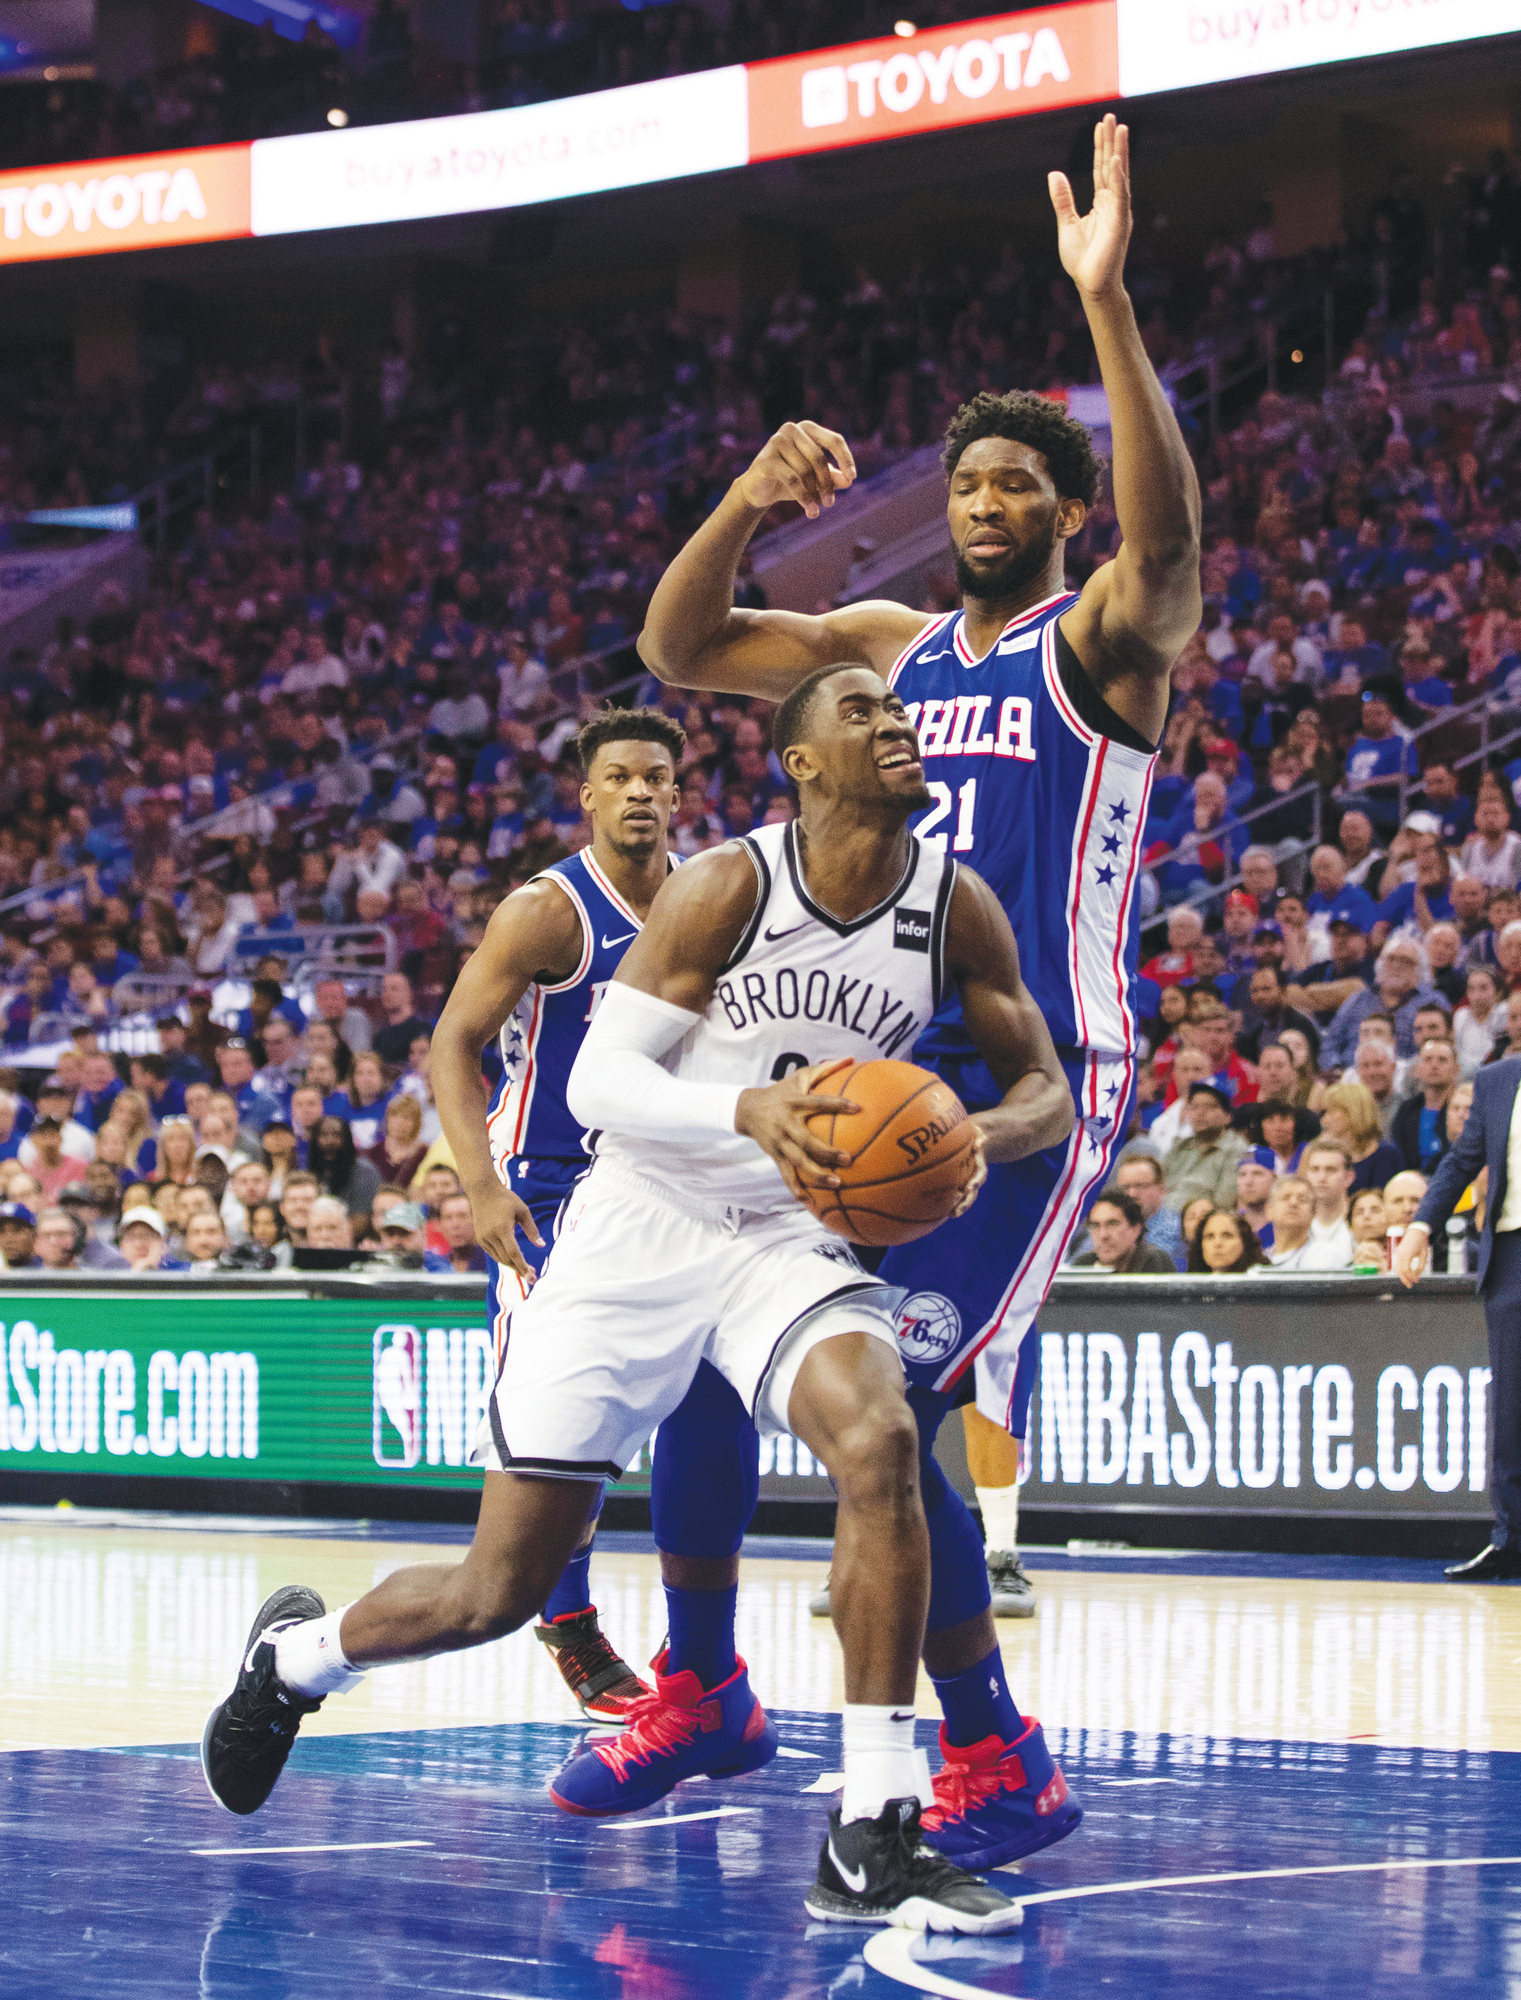 Brooklyn Nets' Caris LeVert, left, drives to the basket against Philadelphia 76ers' Joel Embiid, right, of Cameroon, during the second half in Game 1 of a first-round NBA basketball playoff series, Saturday, April 13, 2019, in Philadelphia.  The Nets won 111-102. (AP Photo/Chris Szagola)